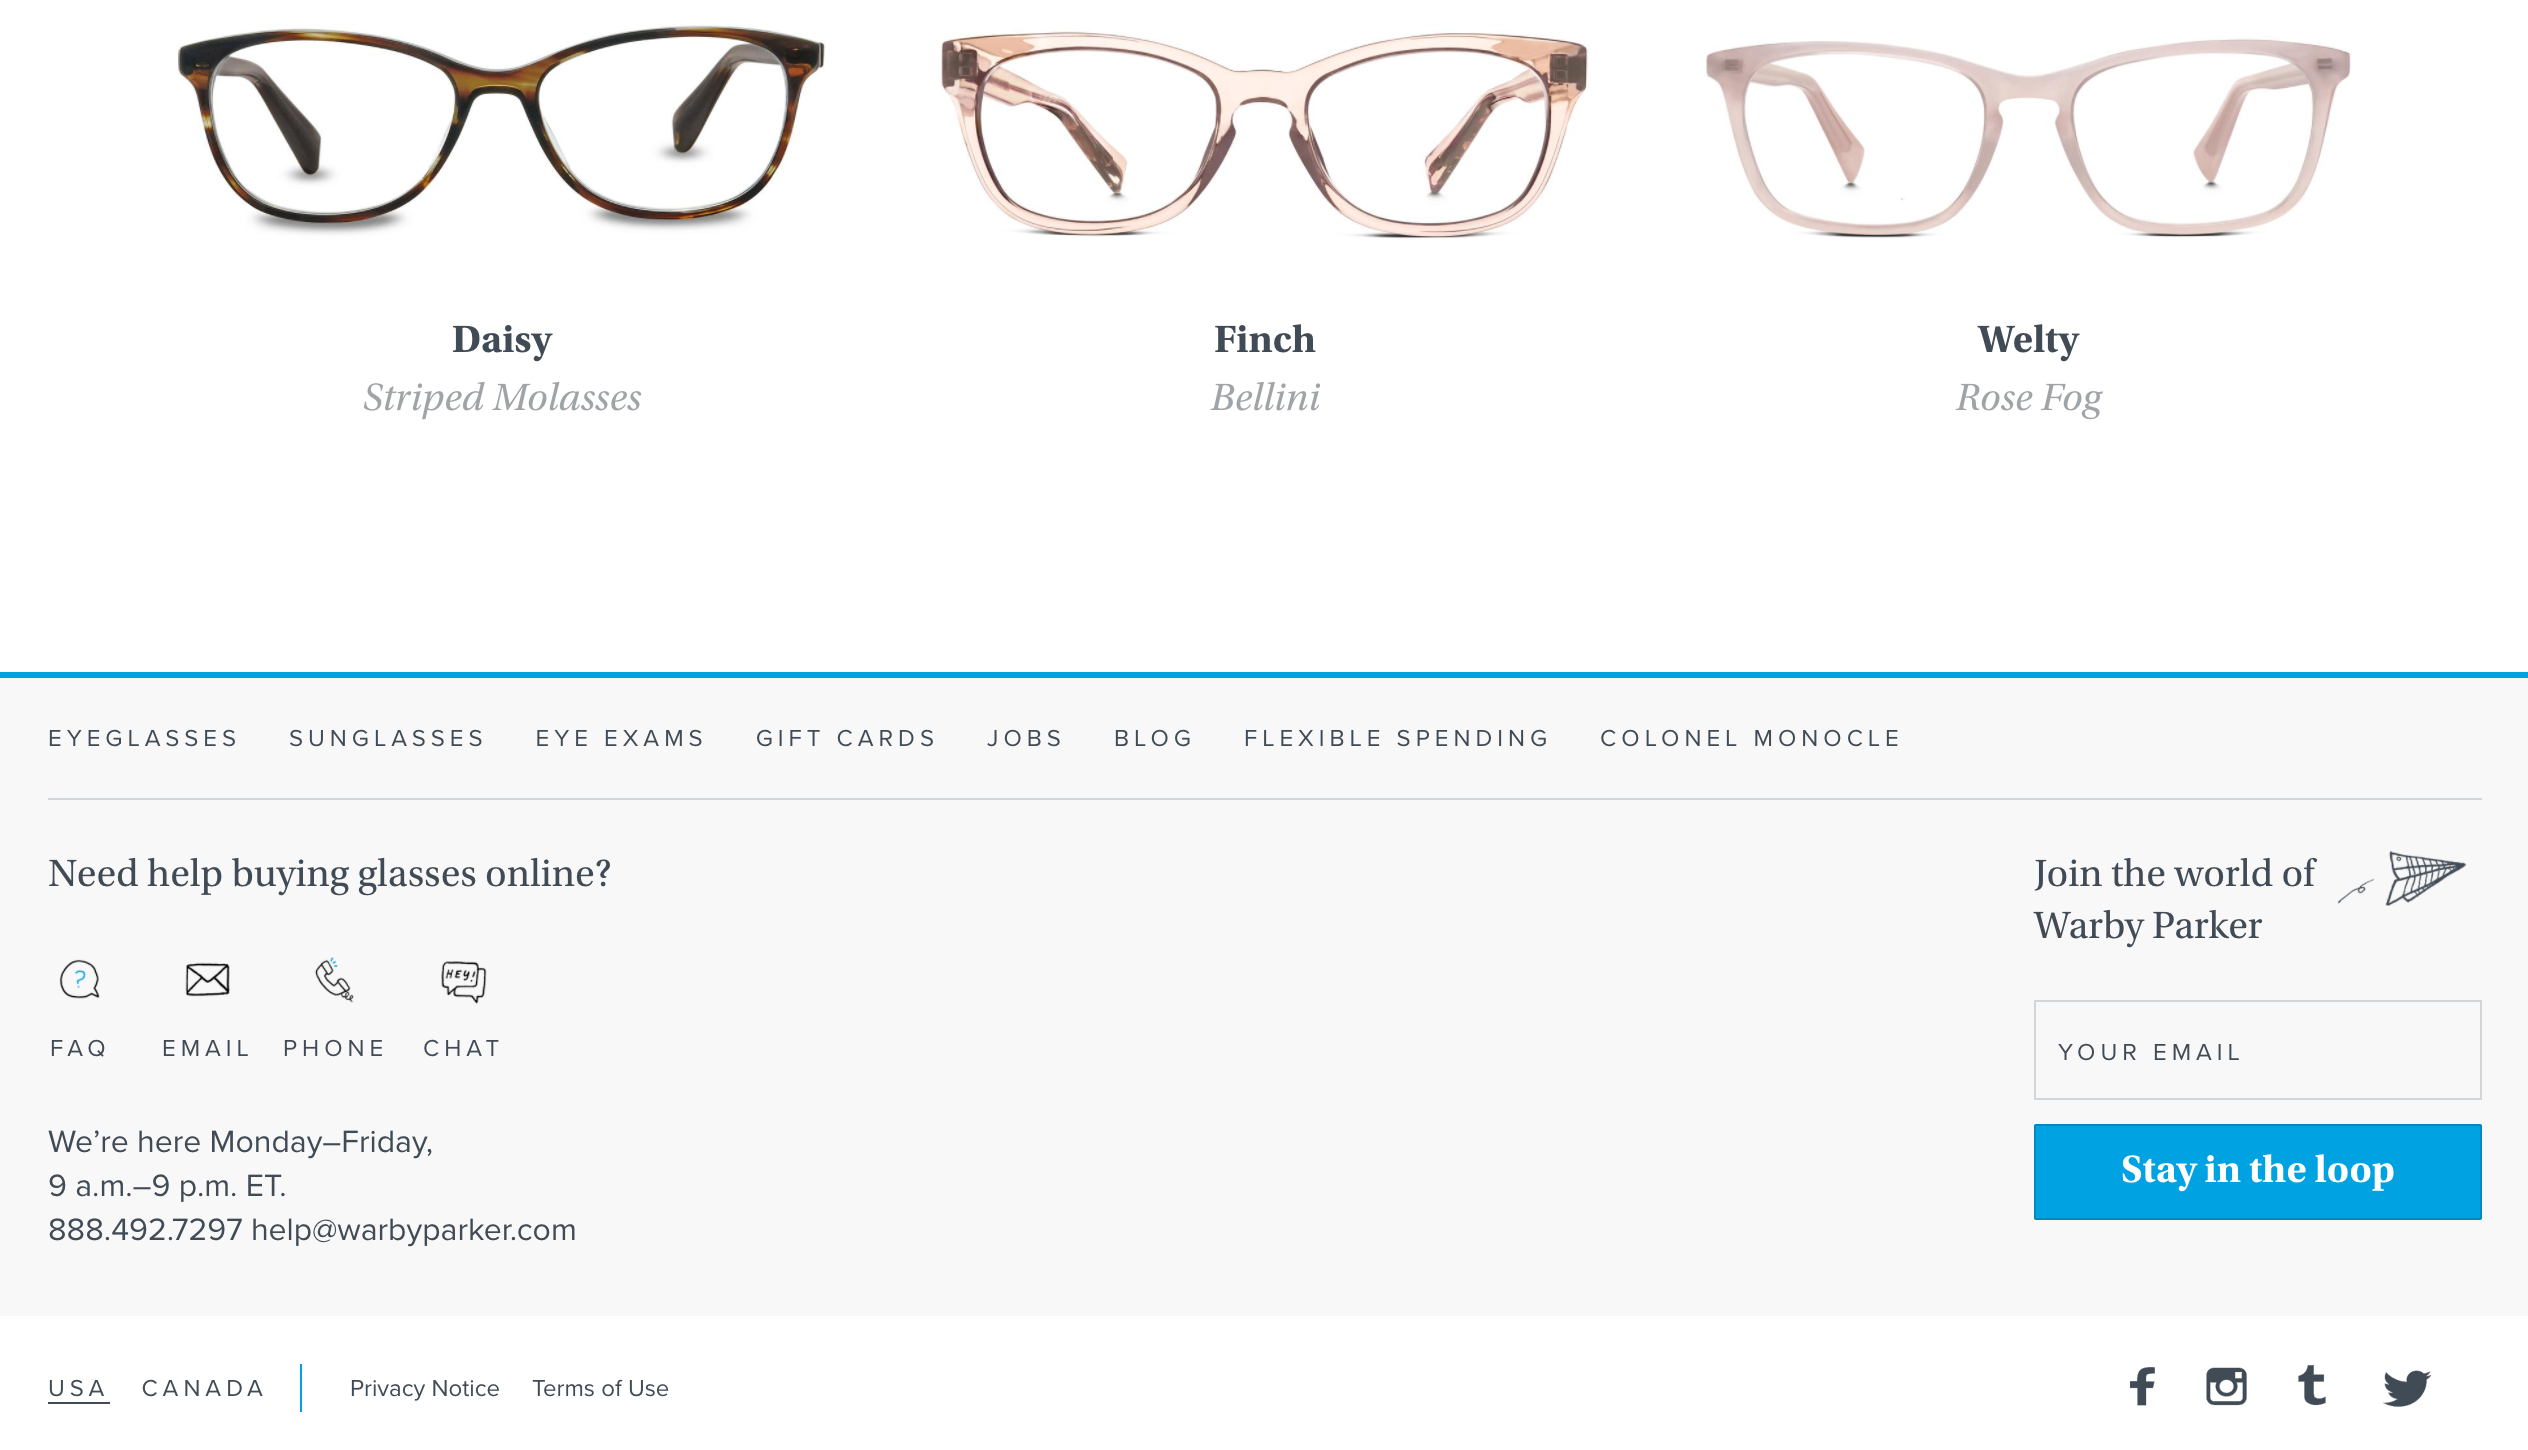 Hannah_Img6_WarbyParker (1).png